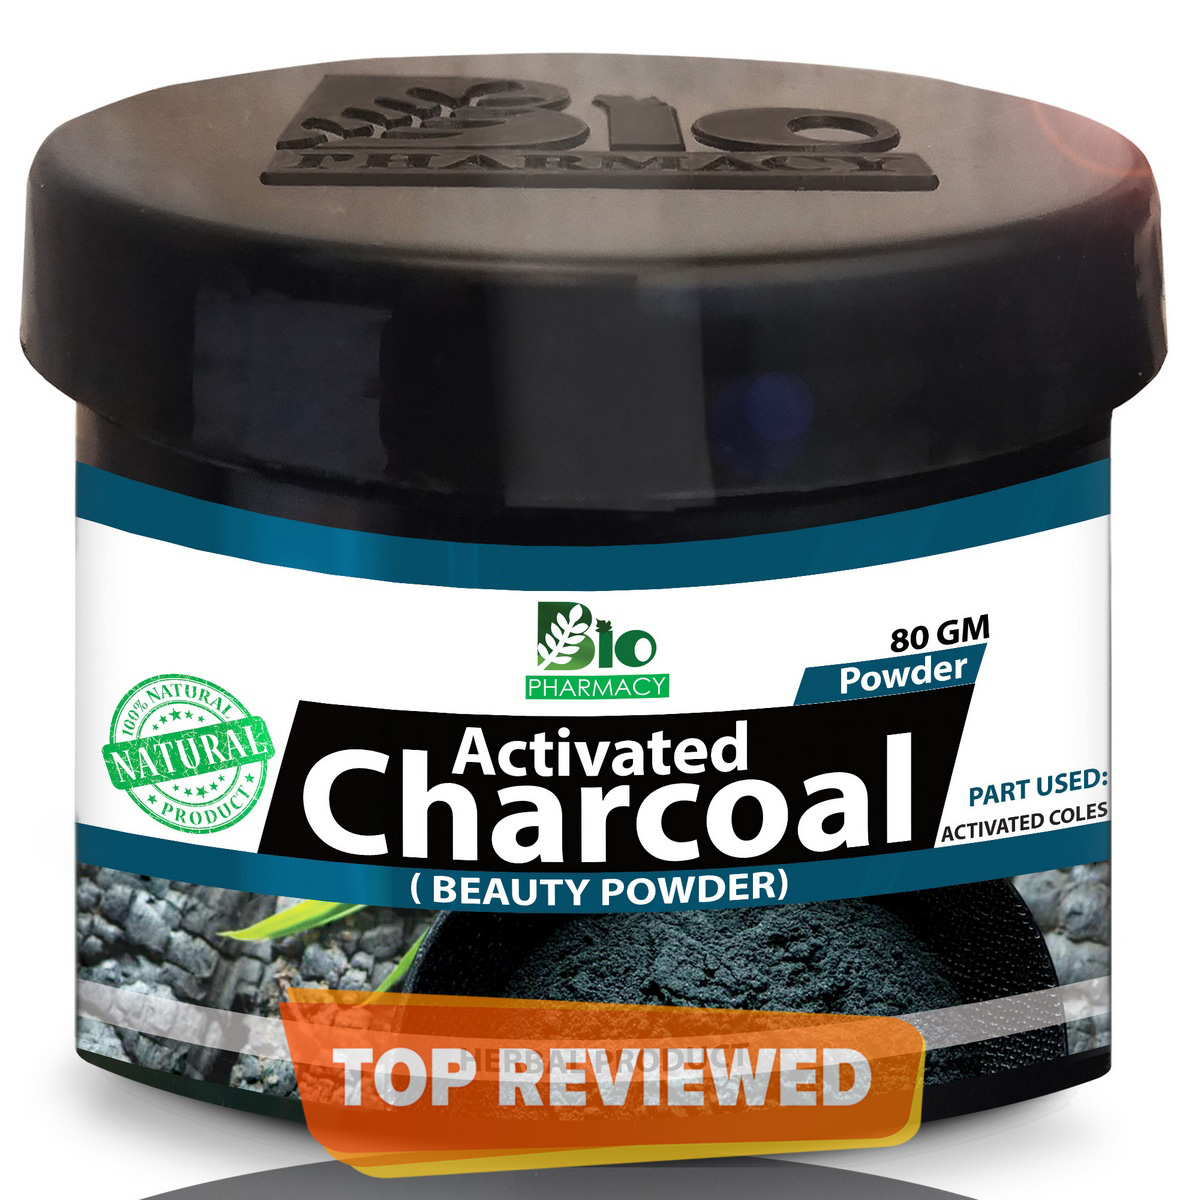 Activated Charcoal Fine Powder - Charcoal Face Mask Powder - 100% Natural - 80 gm